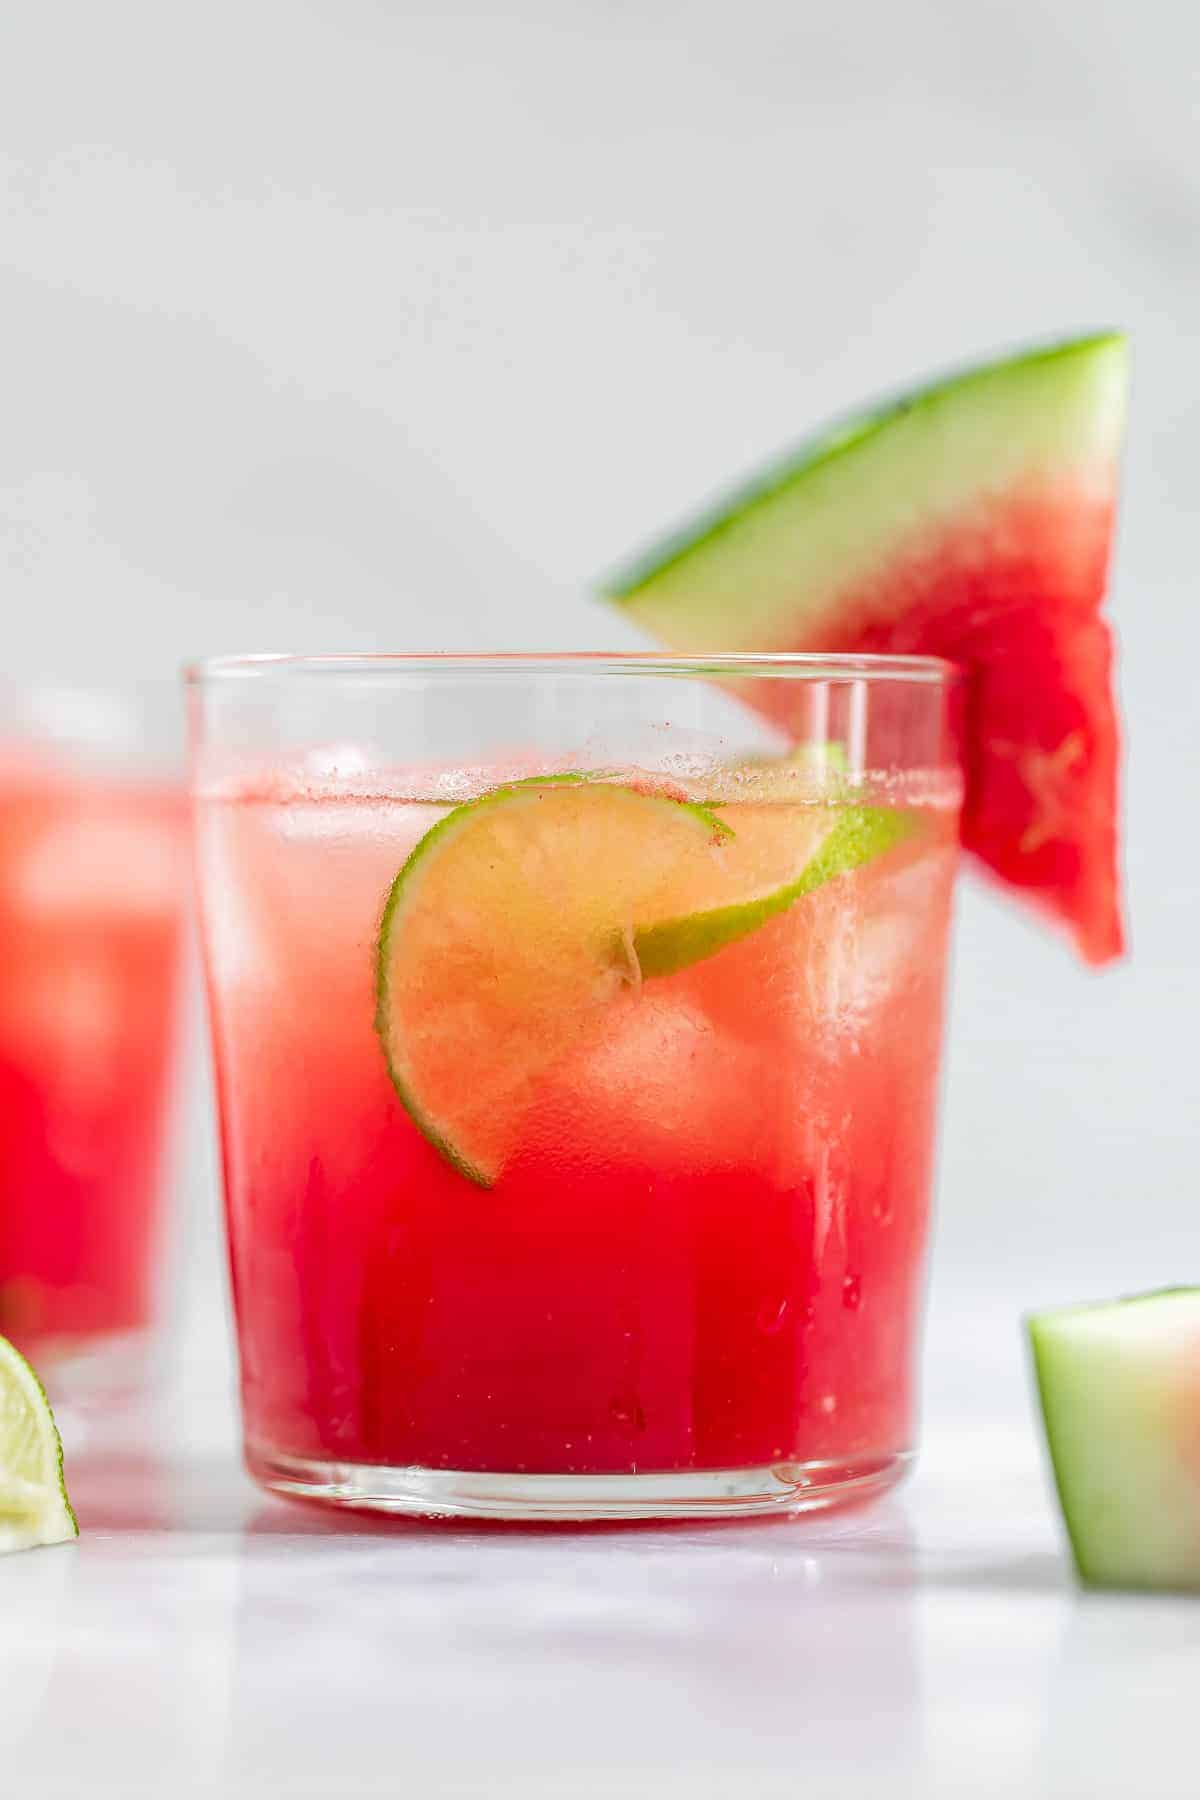 Up close image of the vodka cocktail with lime and watermelon wedges.